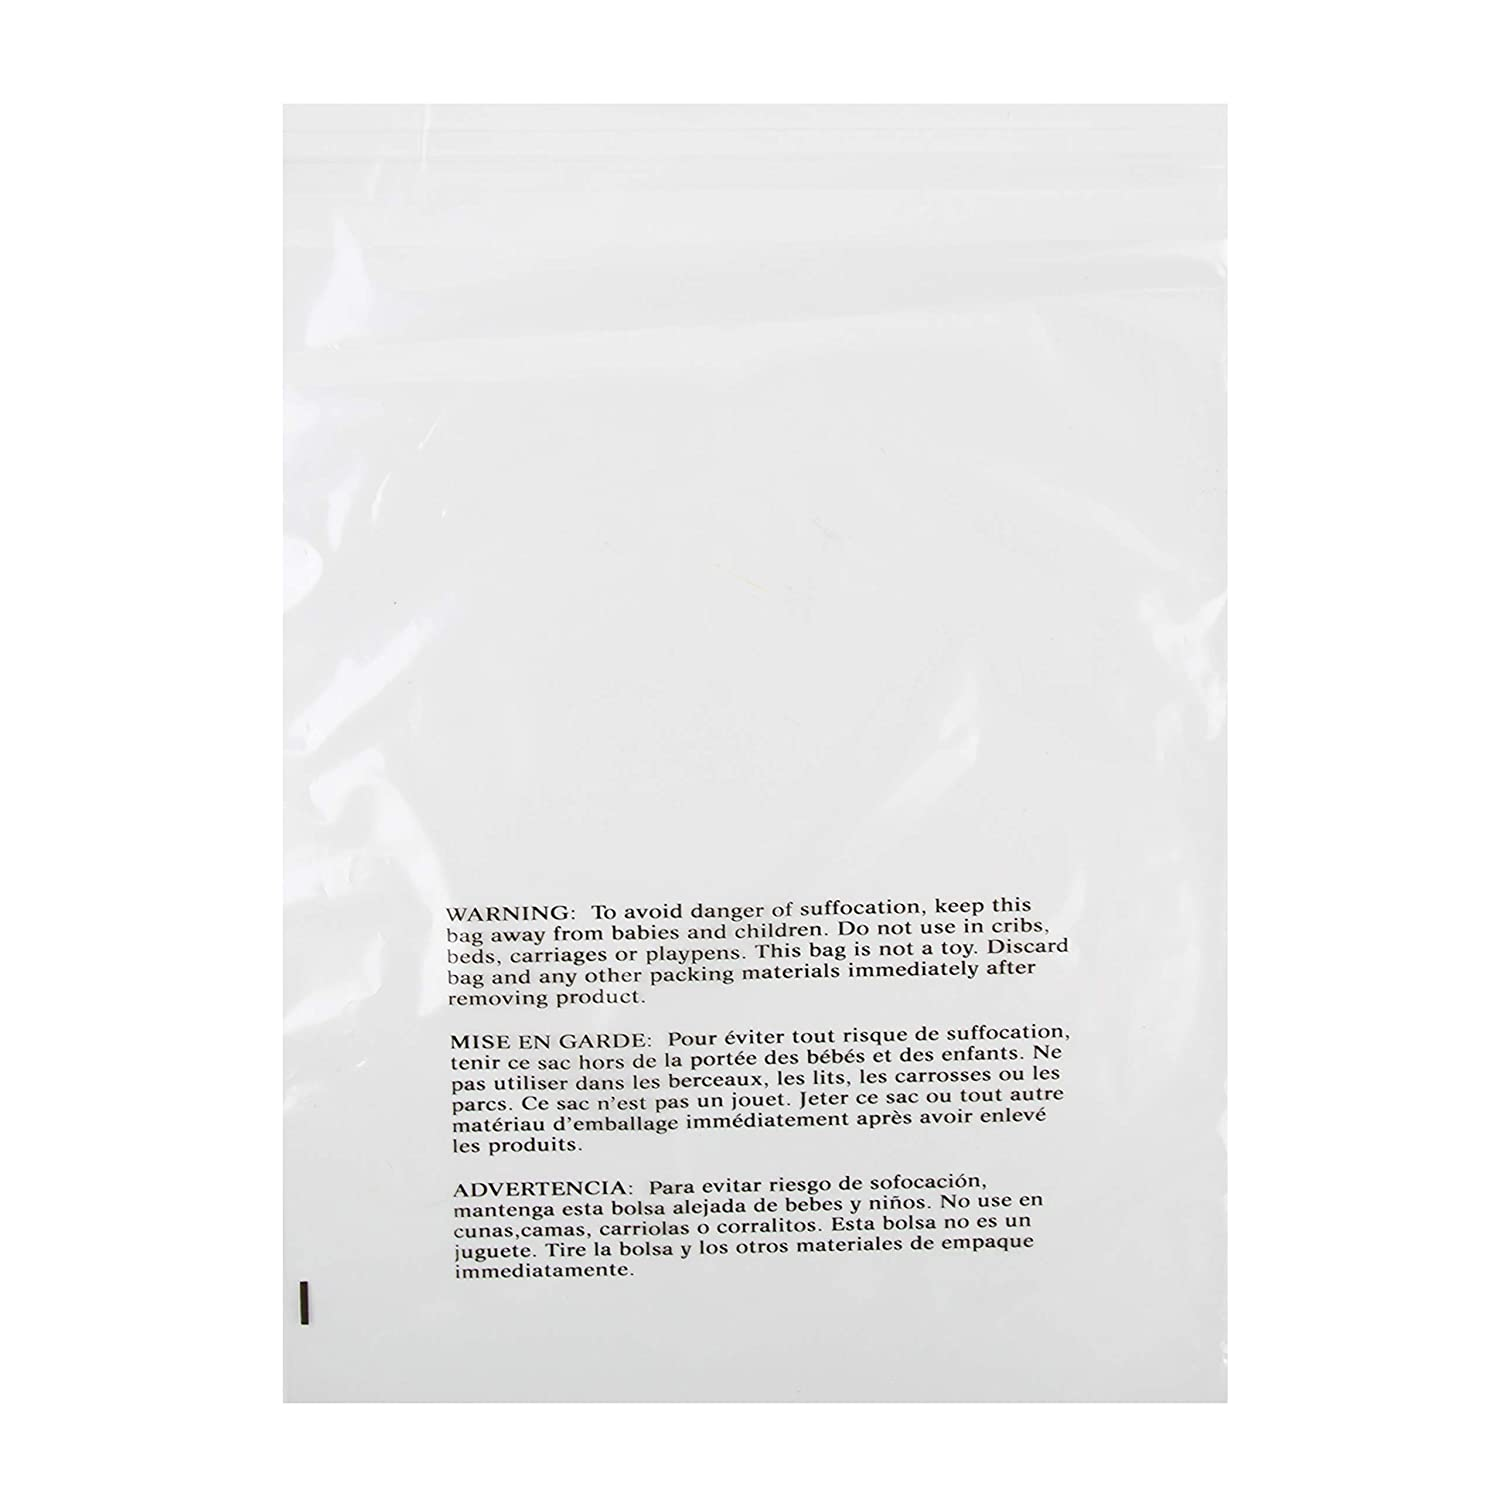 5x7 Poly Bags Retail Supply Co 200 Pack Resealable Poly Bags with Suffocation Warning 5x7 Clear Bags Poly Bags 5x7 Packaging Bags